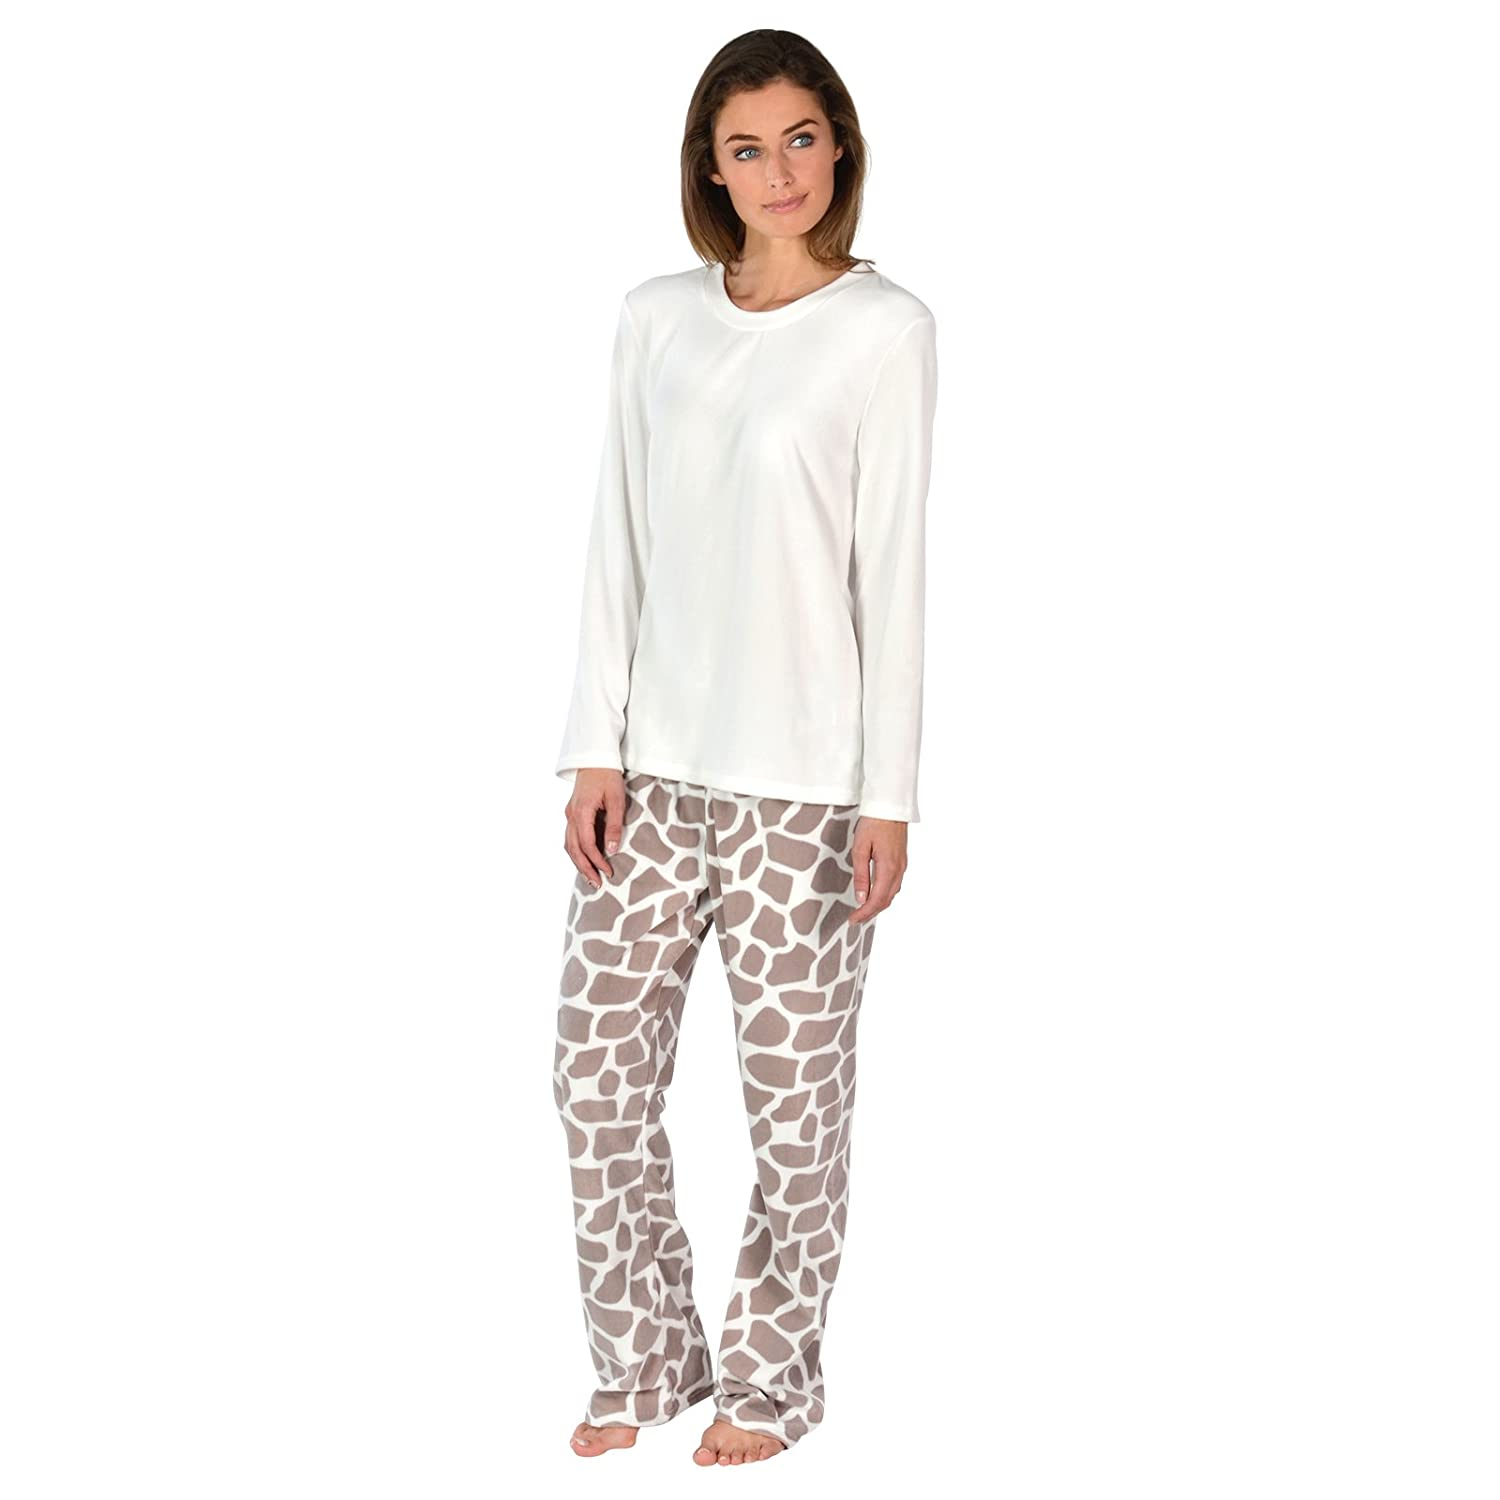 867737d43d Ladies Cosy Soft Fleece Pyjama Gift Set PJS Long Top   Bottoms Womens  Nightwear  Amazon.co.uk  Clothing